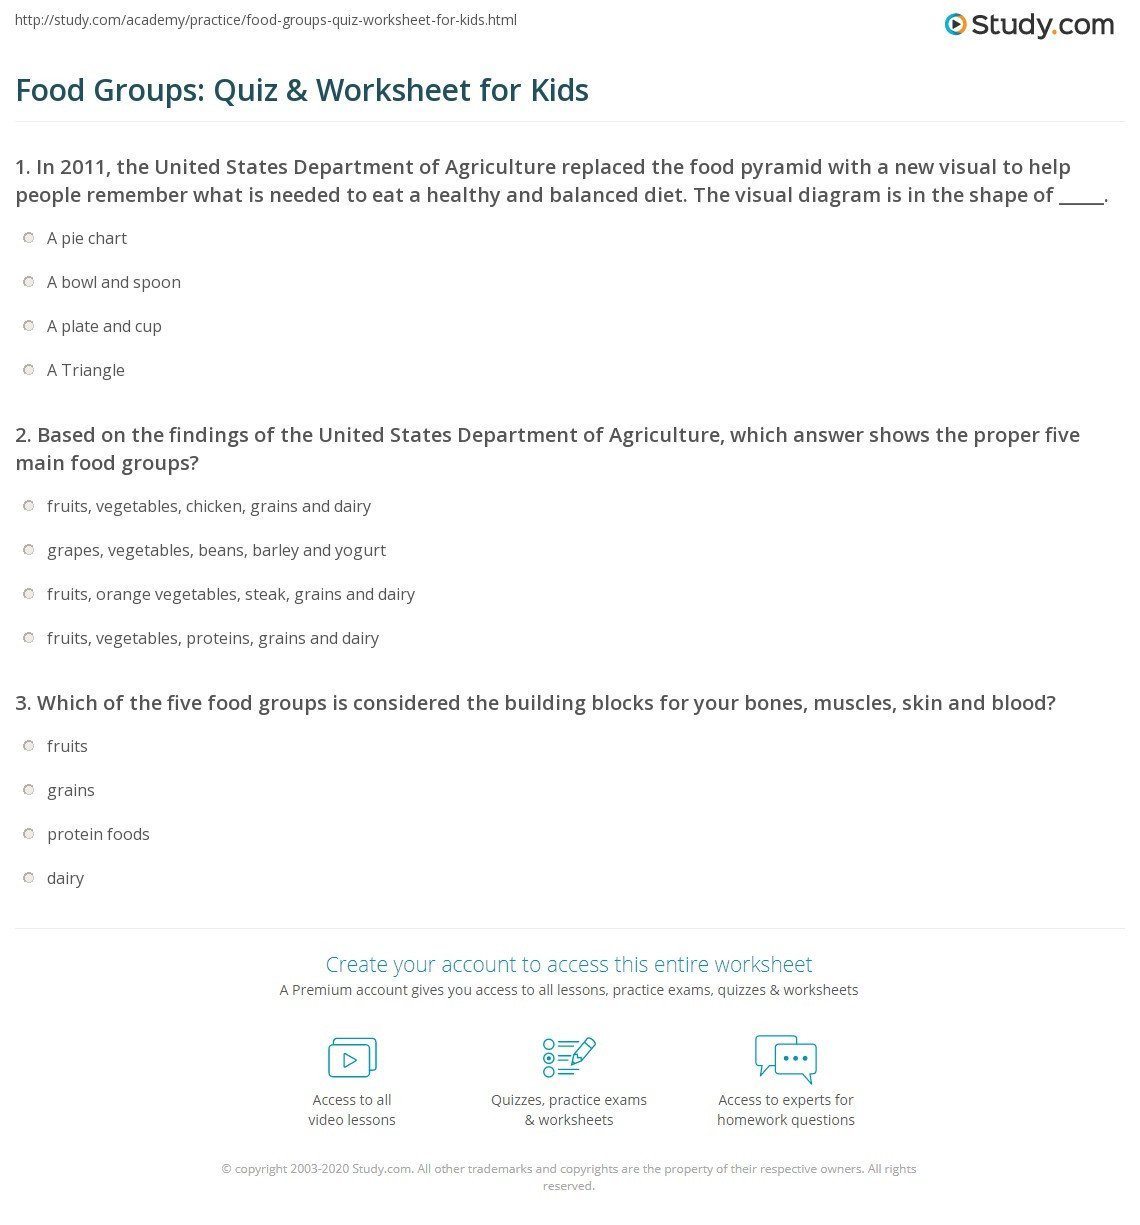 Five Food Groups Worksheets Food Groups Quiz & Worksheet for Kids